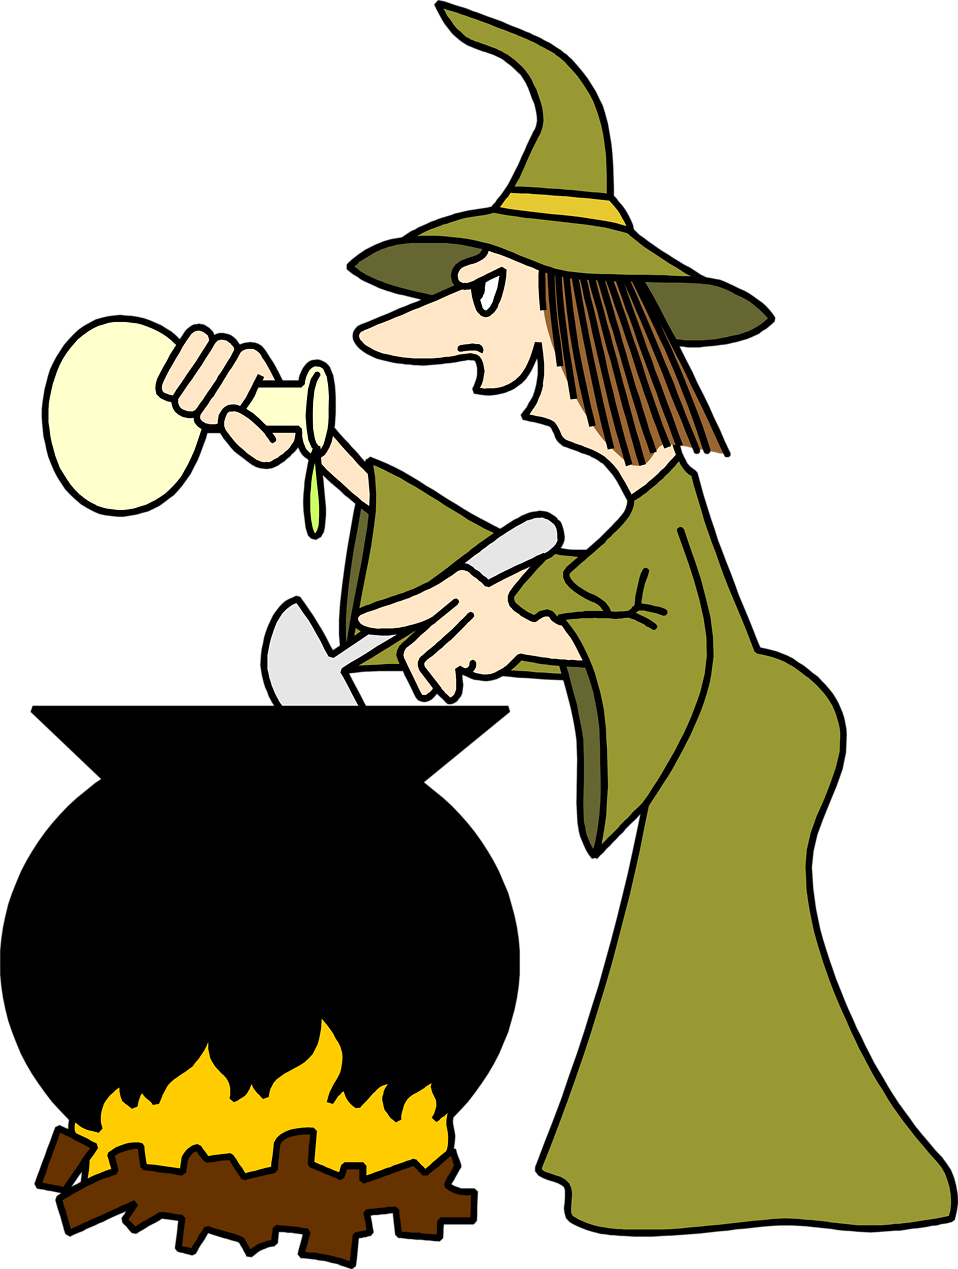 witch free stock photo illustration of a witch cooking with a